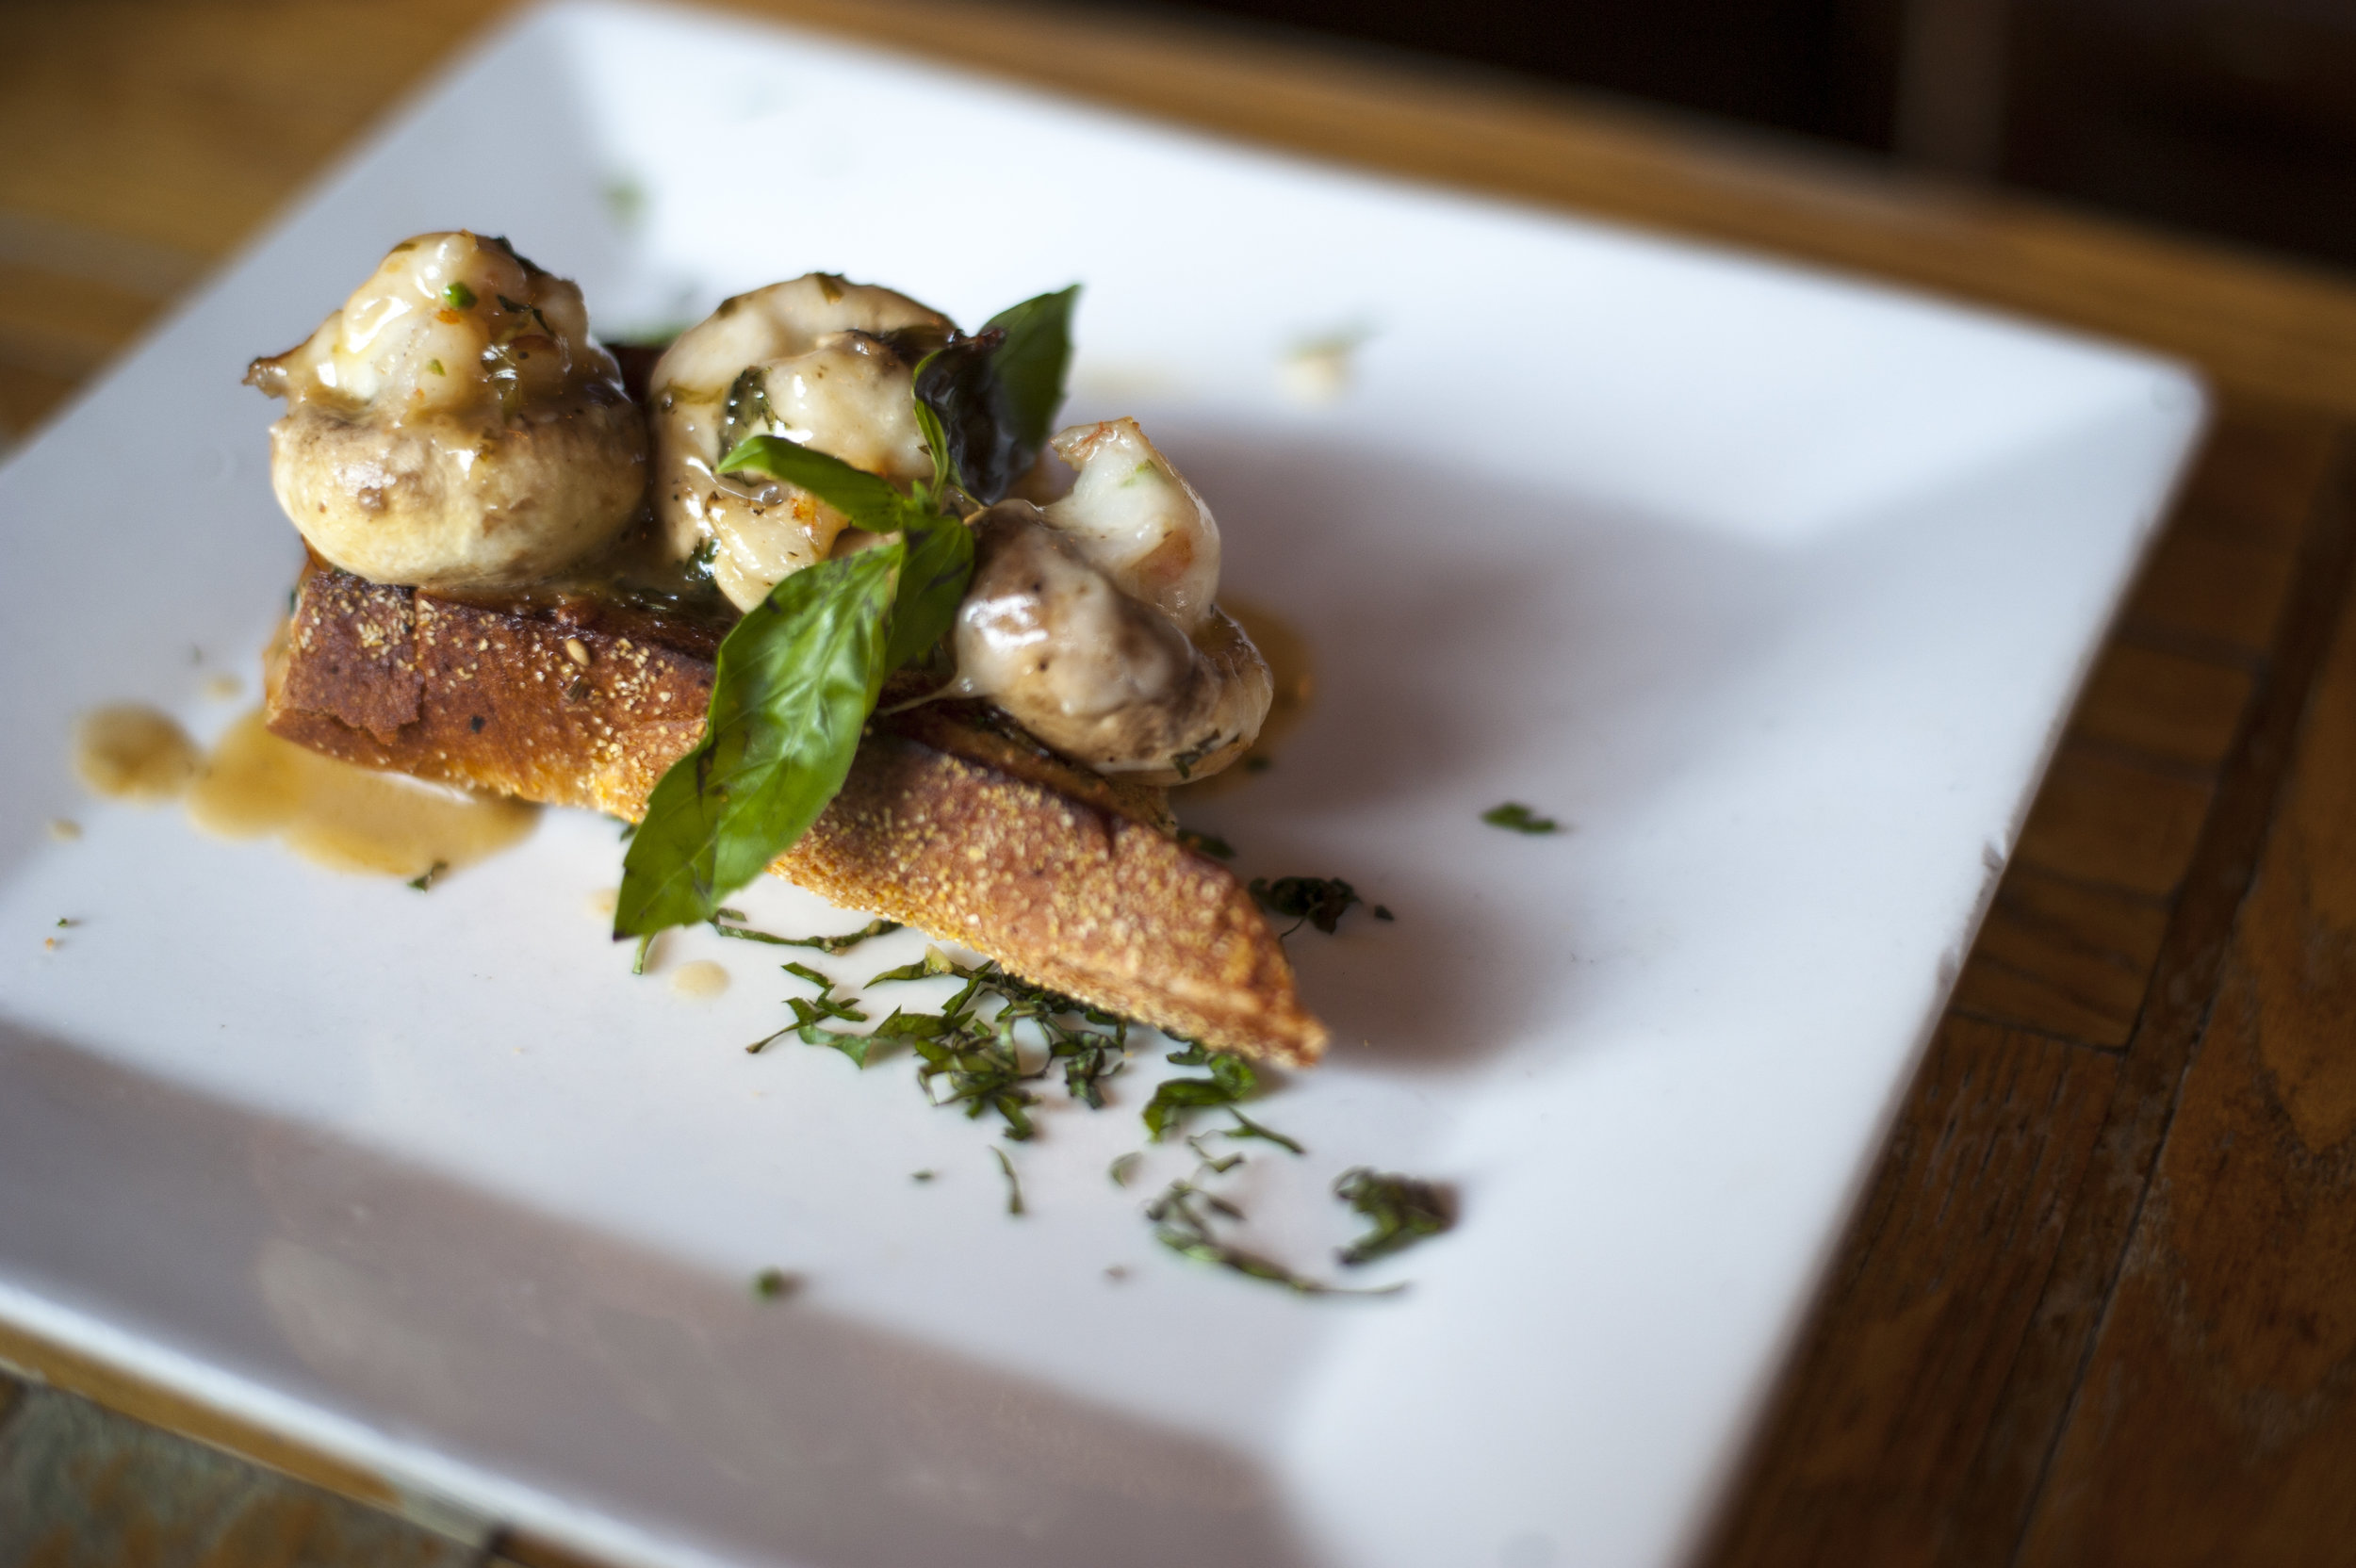 The Shrimp Cargot is drizzled with garlic lemon sauce, serving up deliciously savory shrimp stuffed into a mushroom, atop a country bread crostini.